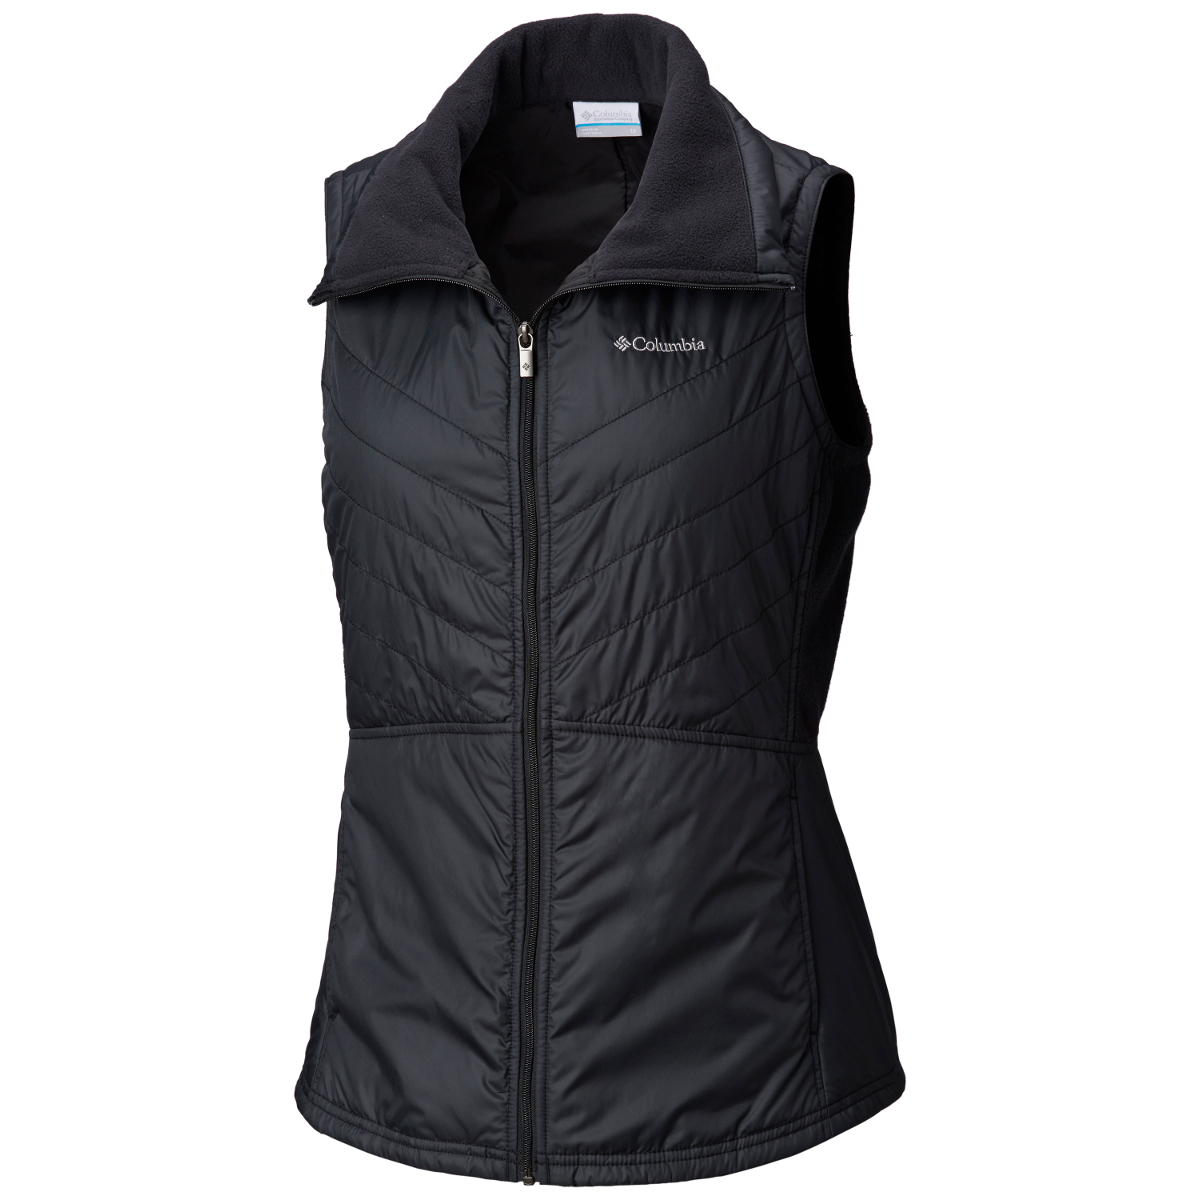 Columbia Women's Mix It Arounda Za  Ii Vest - Black, XL